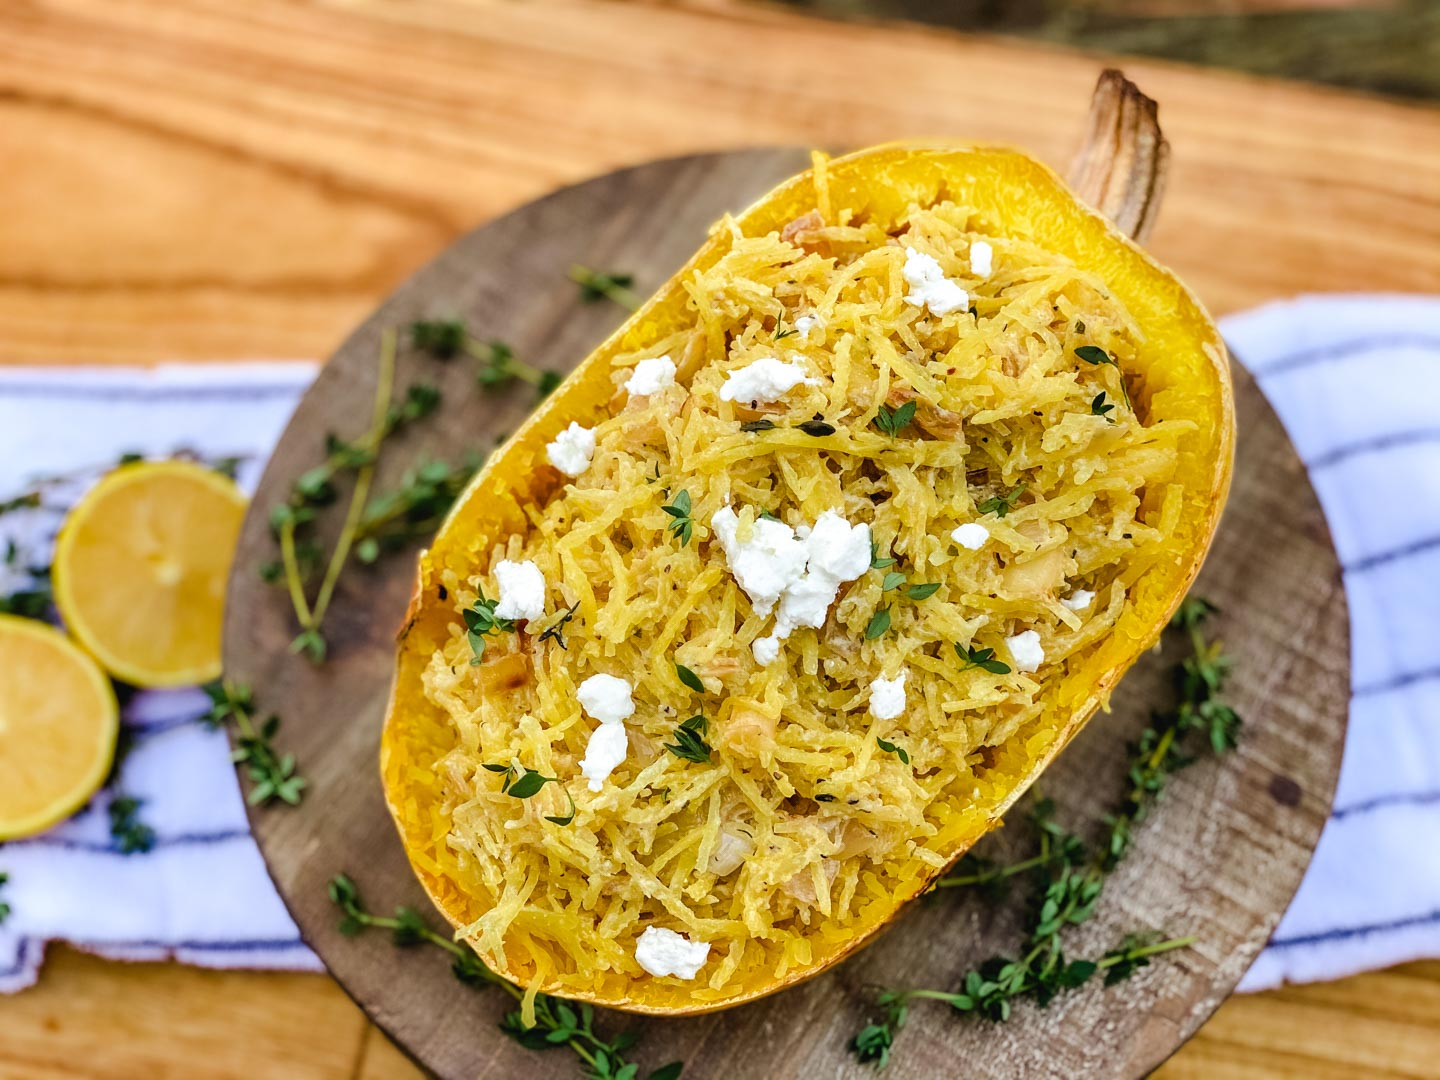 Spaghetti squash sitting on a wood board with fresh thyme.